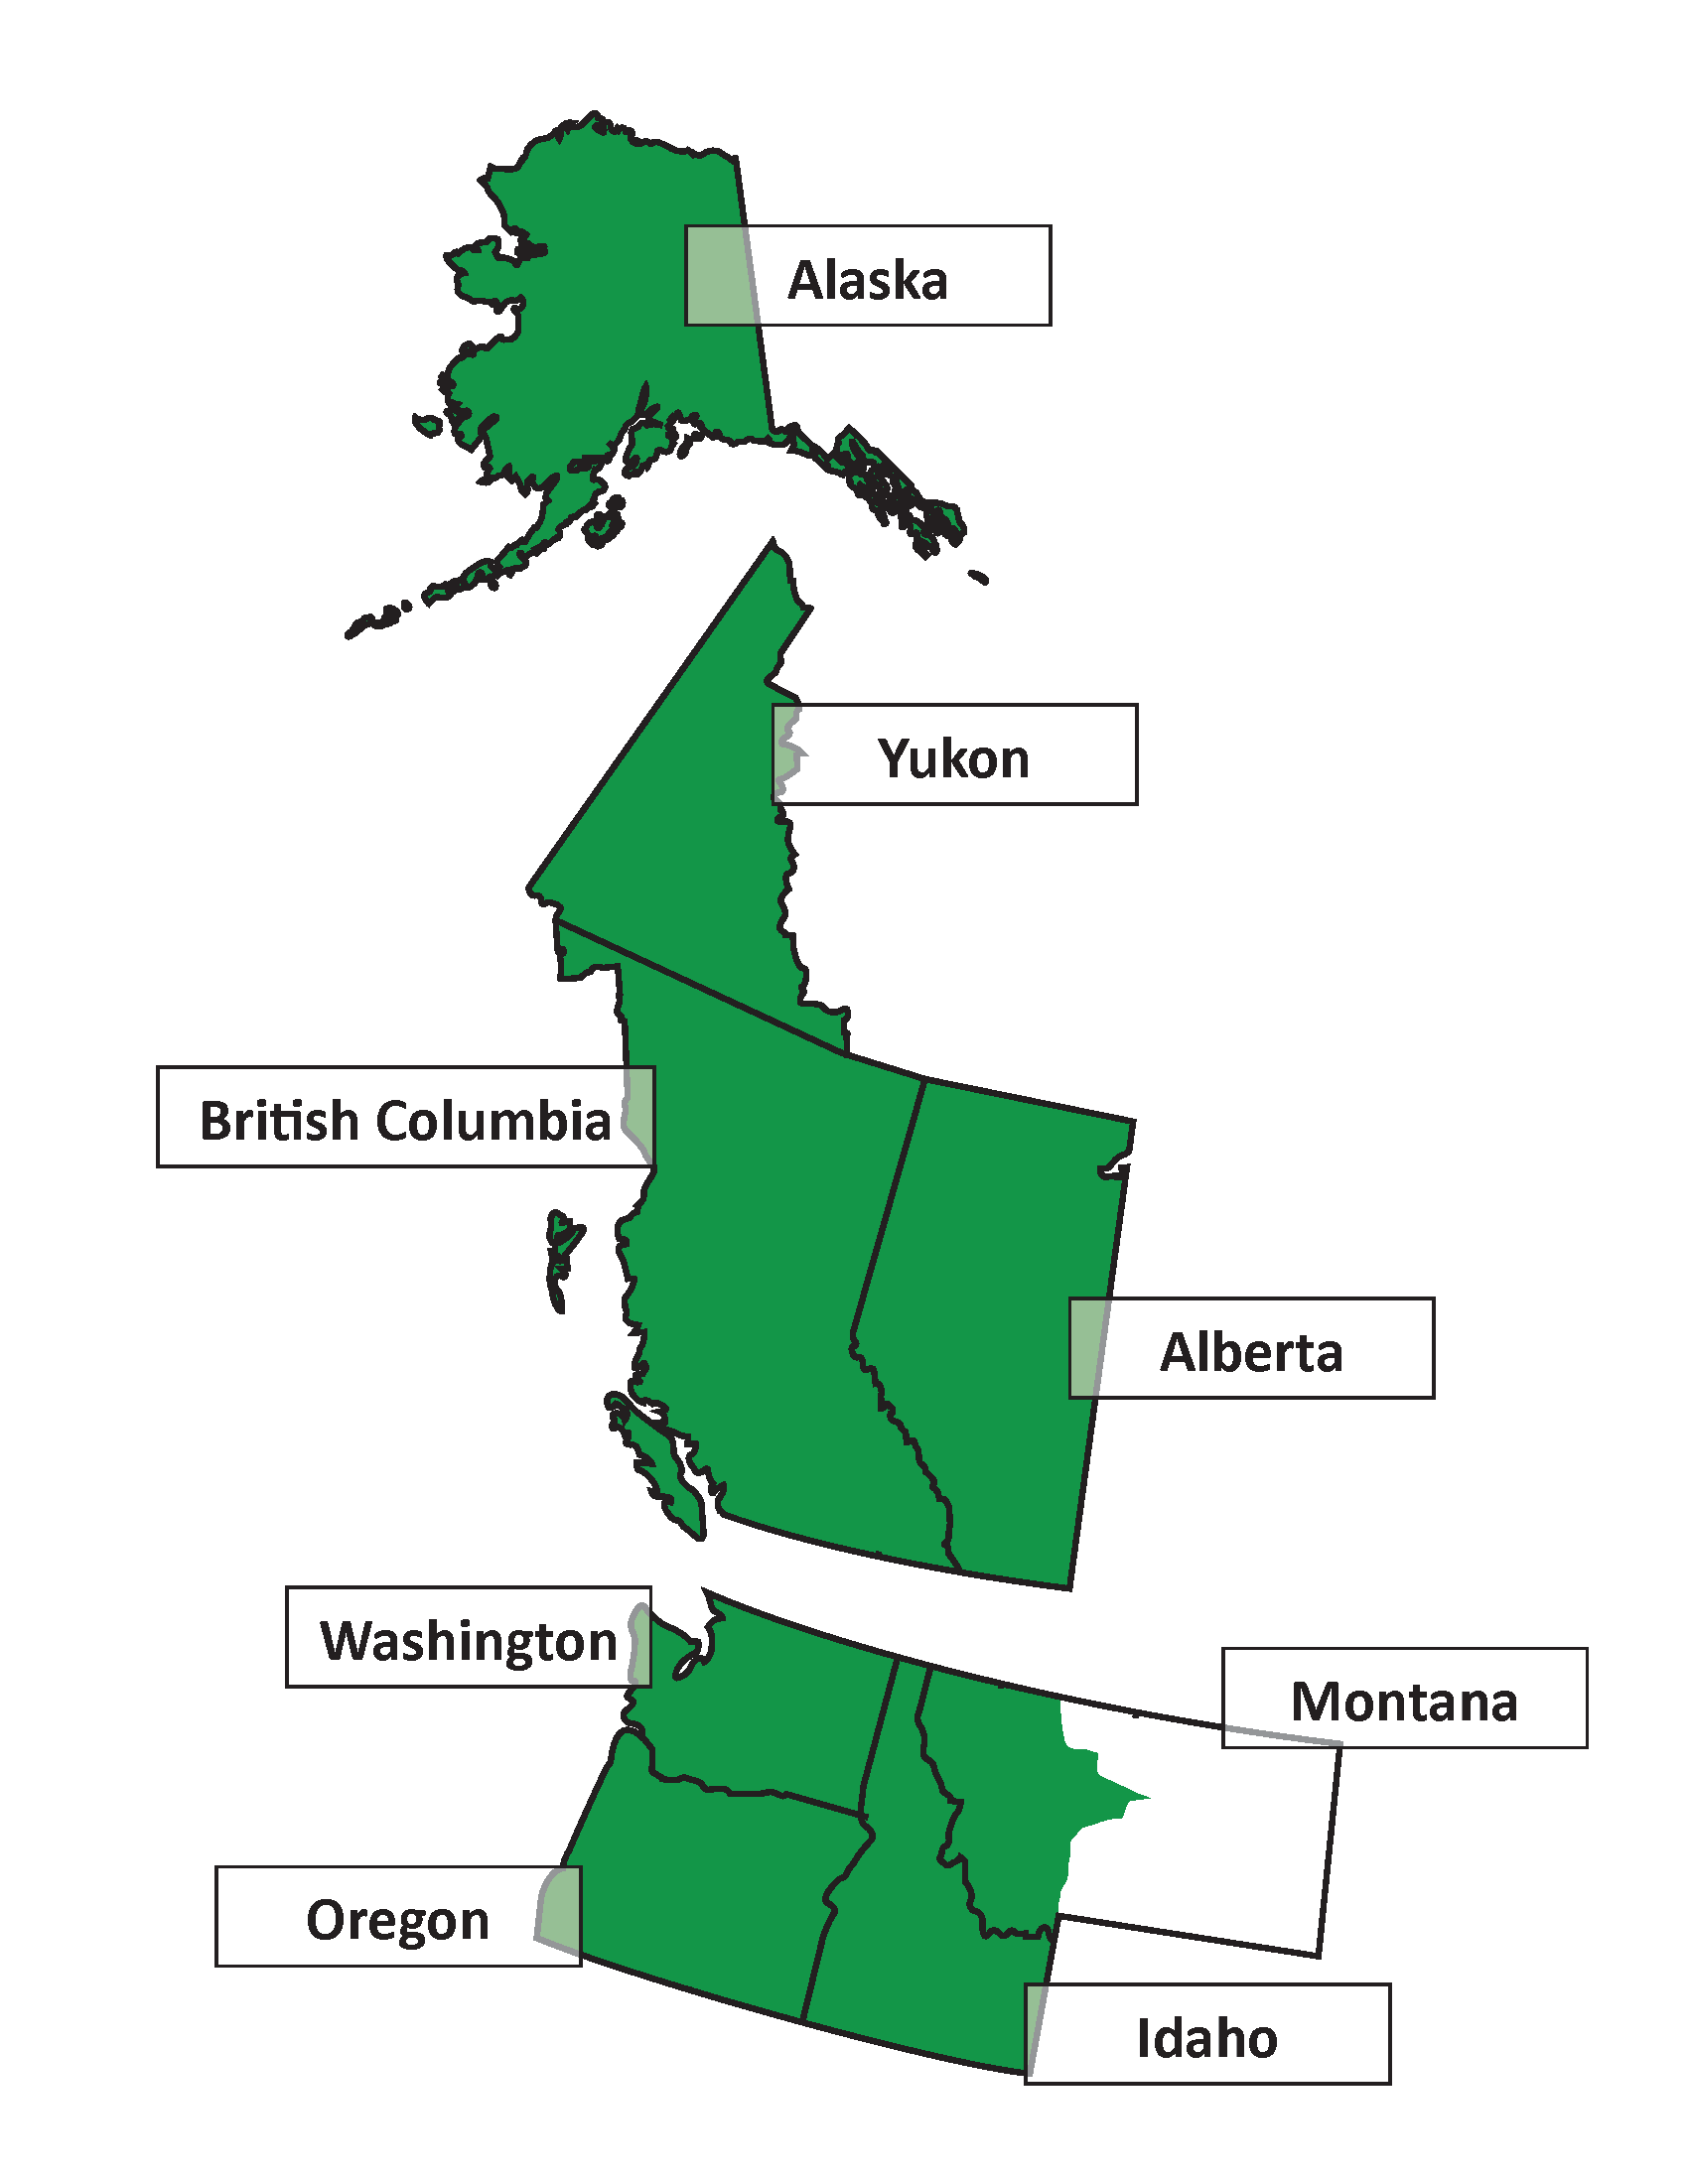 Pacific Northwest Regional Meeting Call For Papers